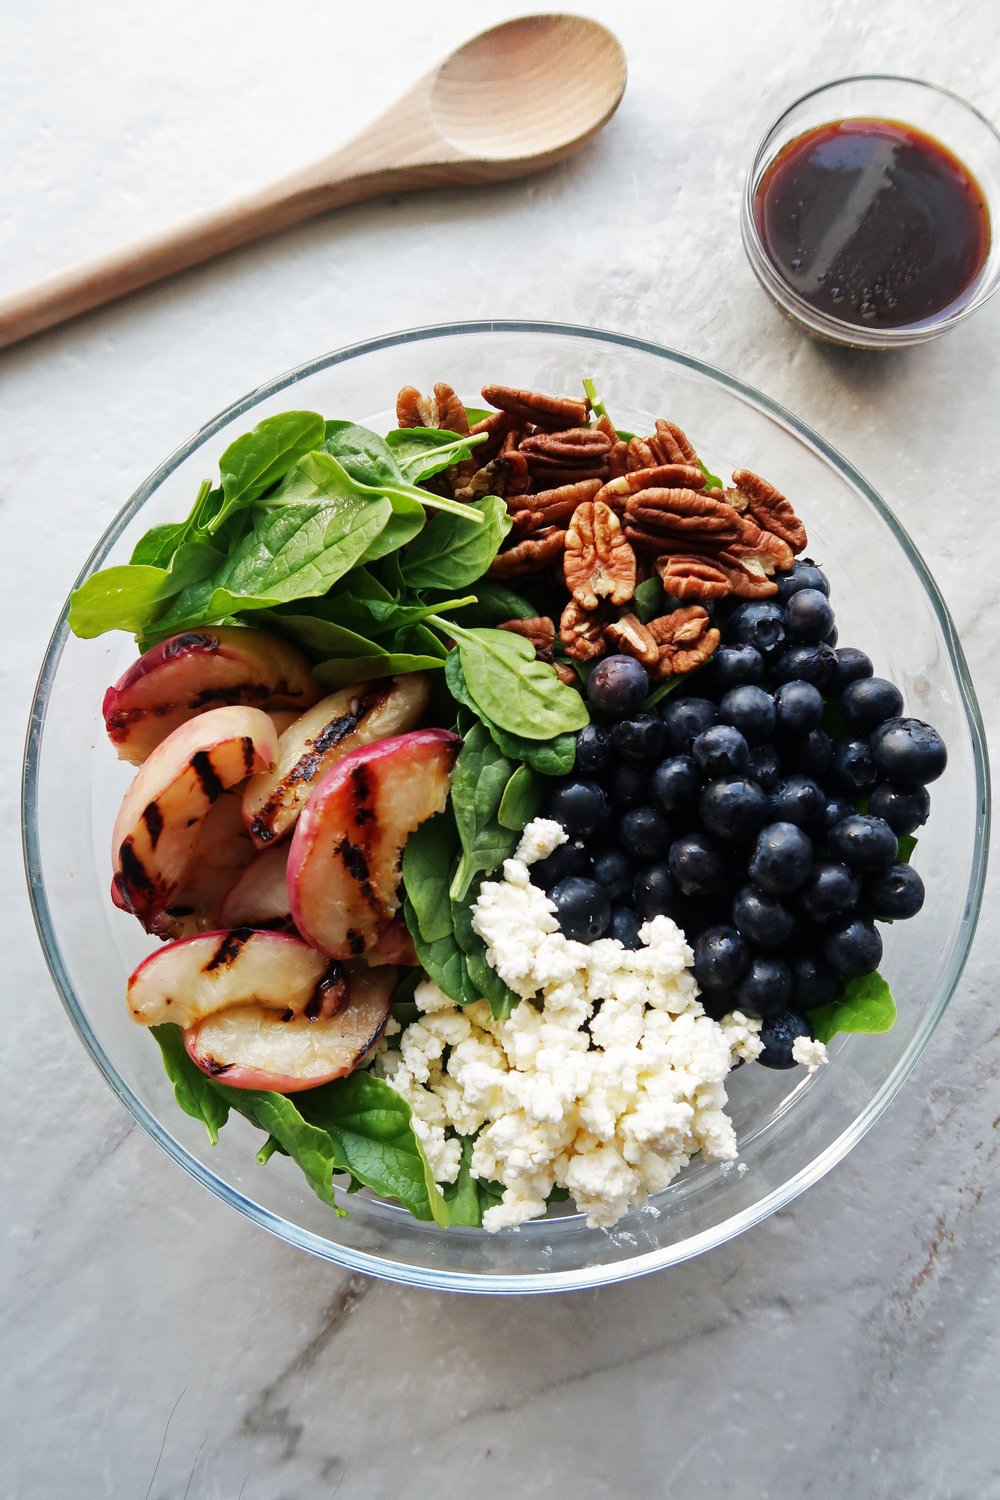 A big glass bowl of spinach covered with grilled peach slices, pecans, blueberries, and crumbled feta cheese with honey balsamic vinaigrette on the side.